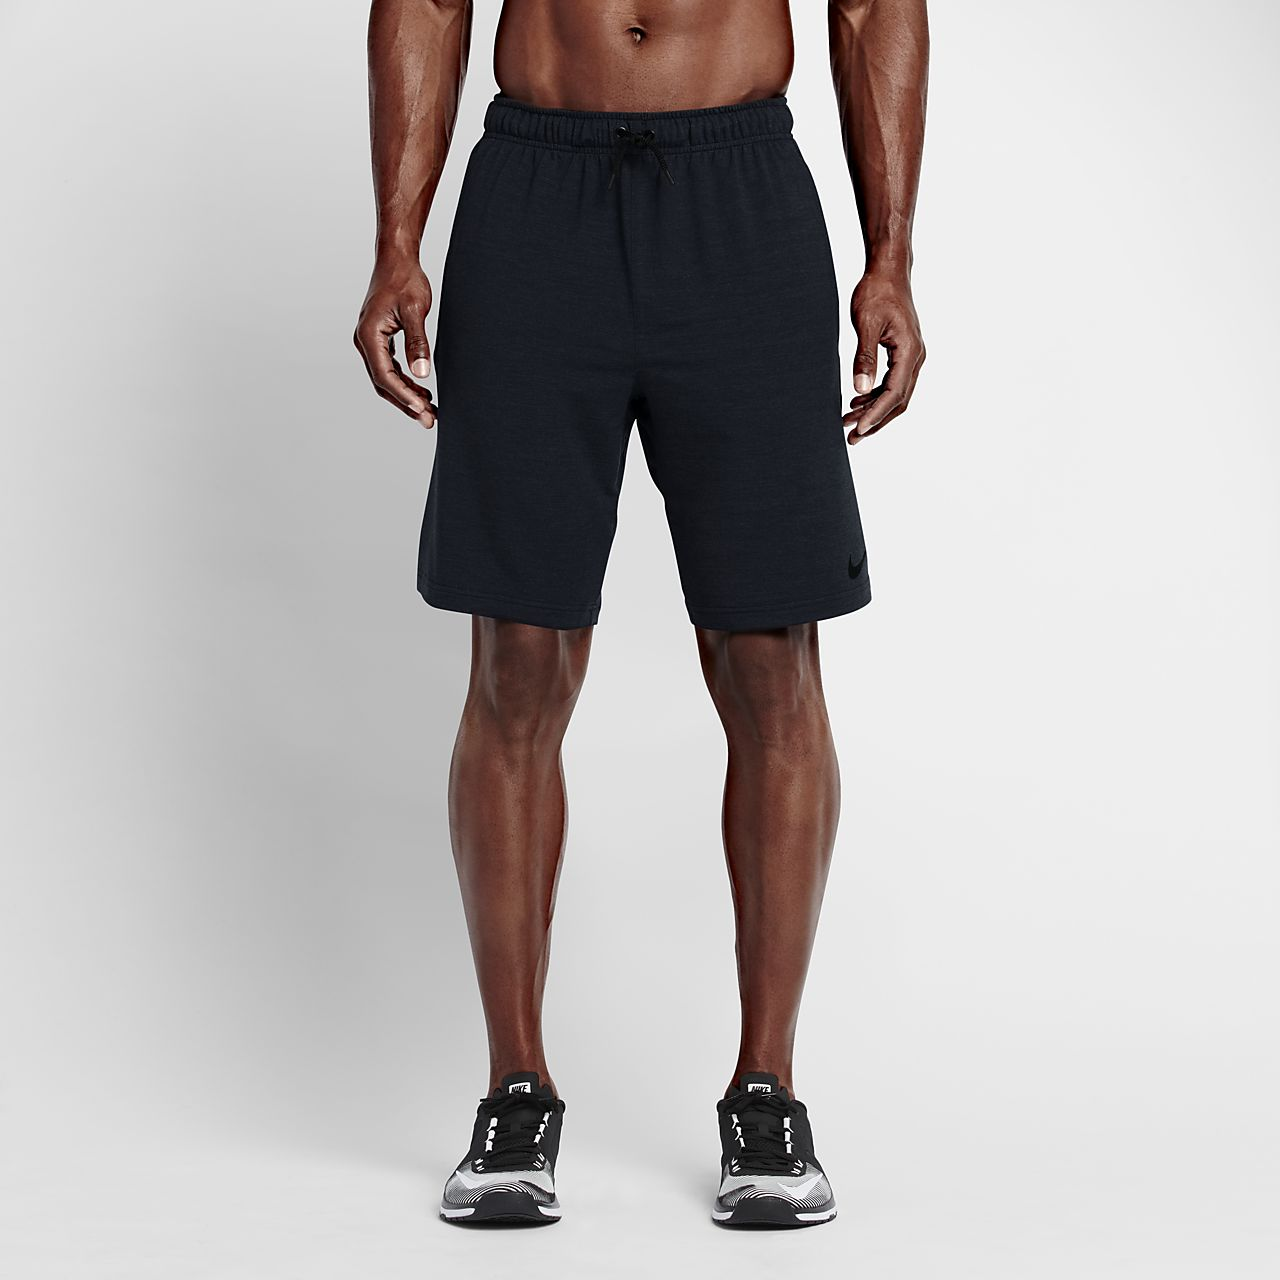 Nike Dri-FIT Men's Fleece Training Shorts